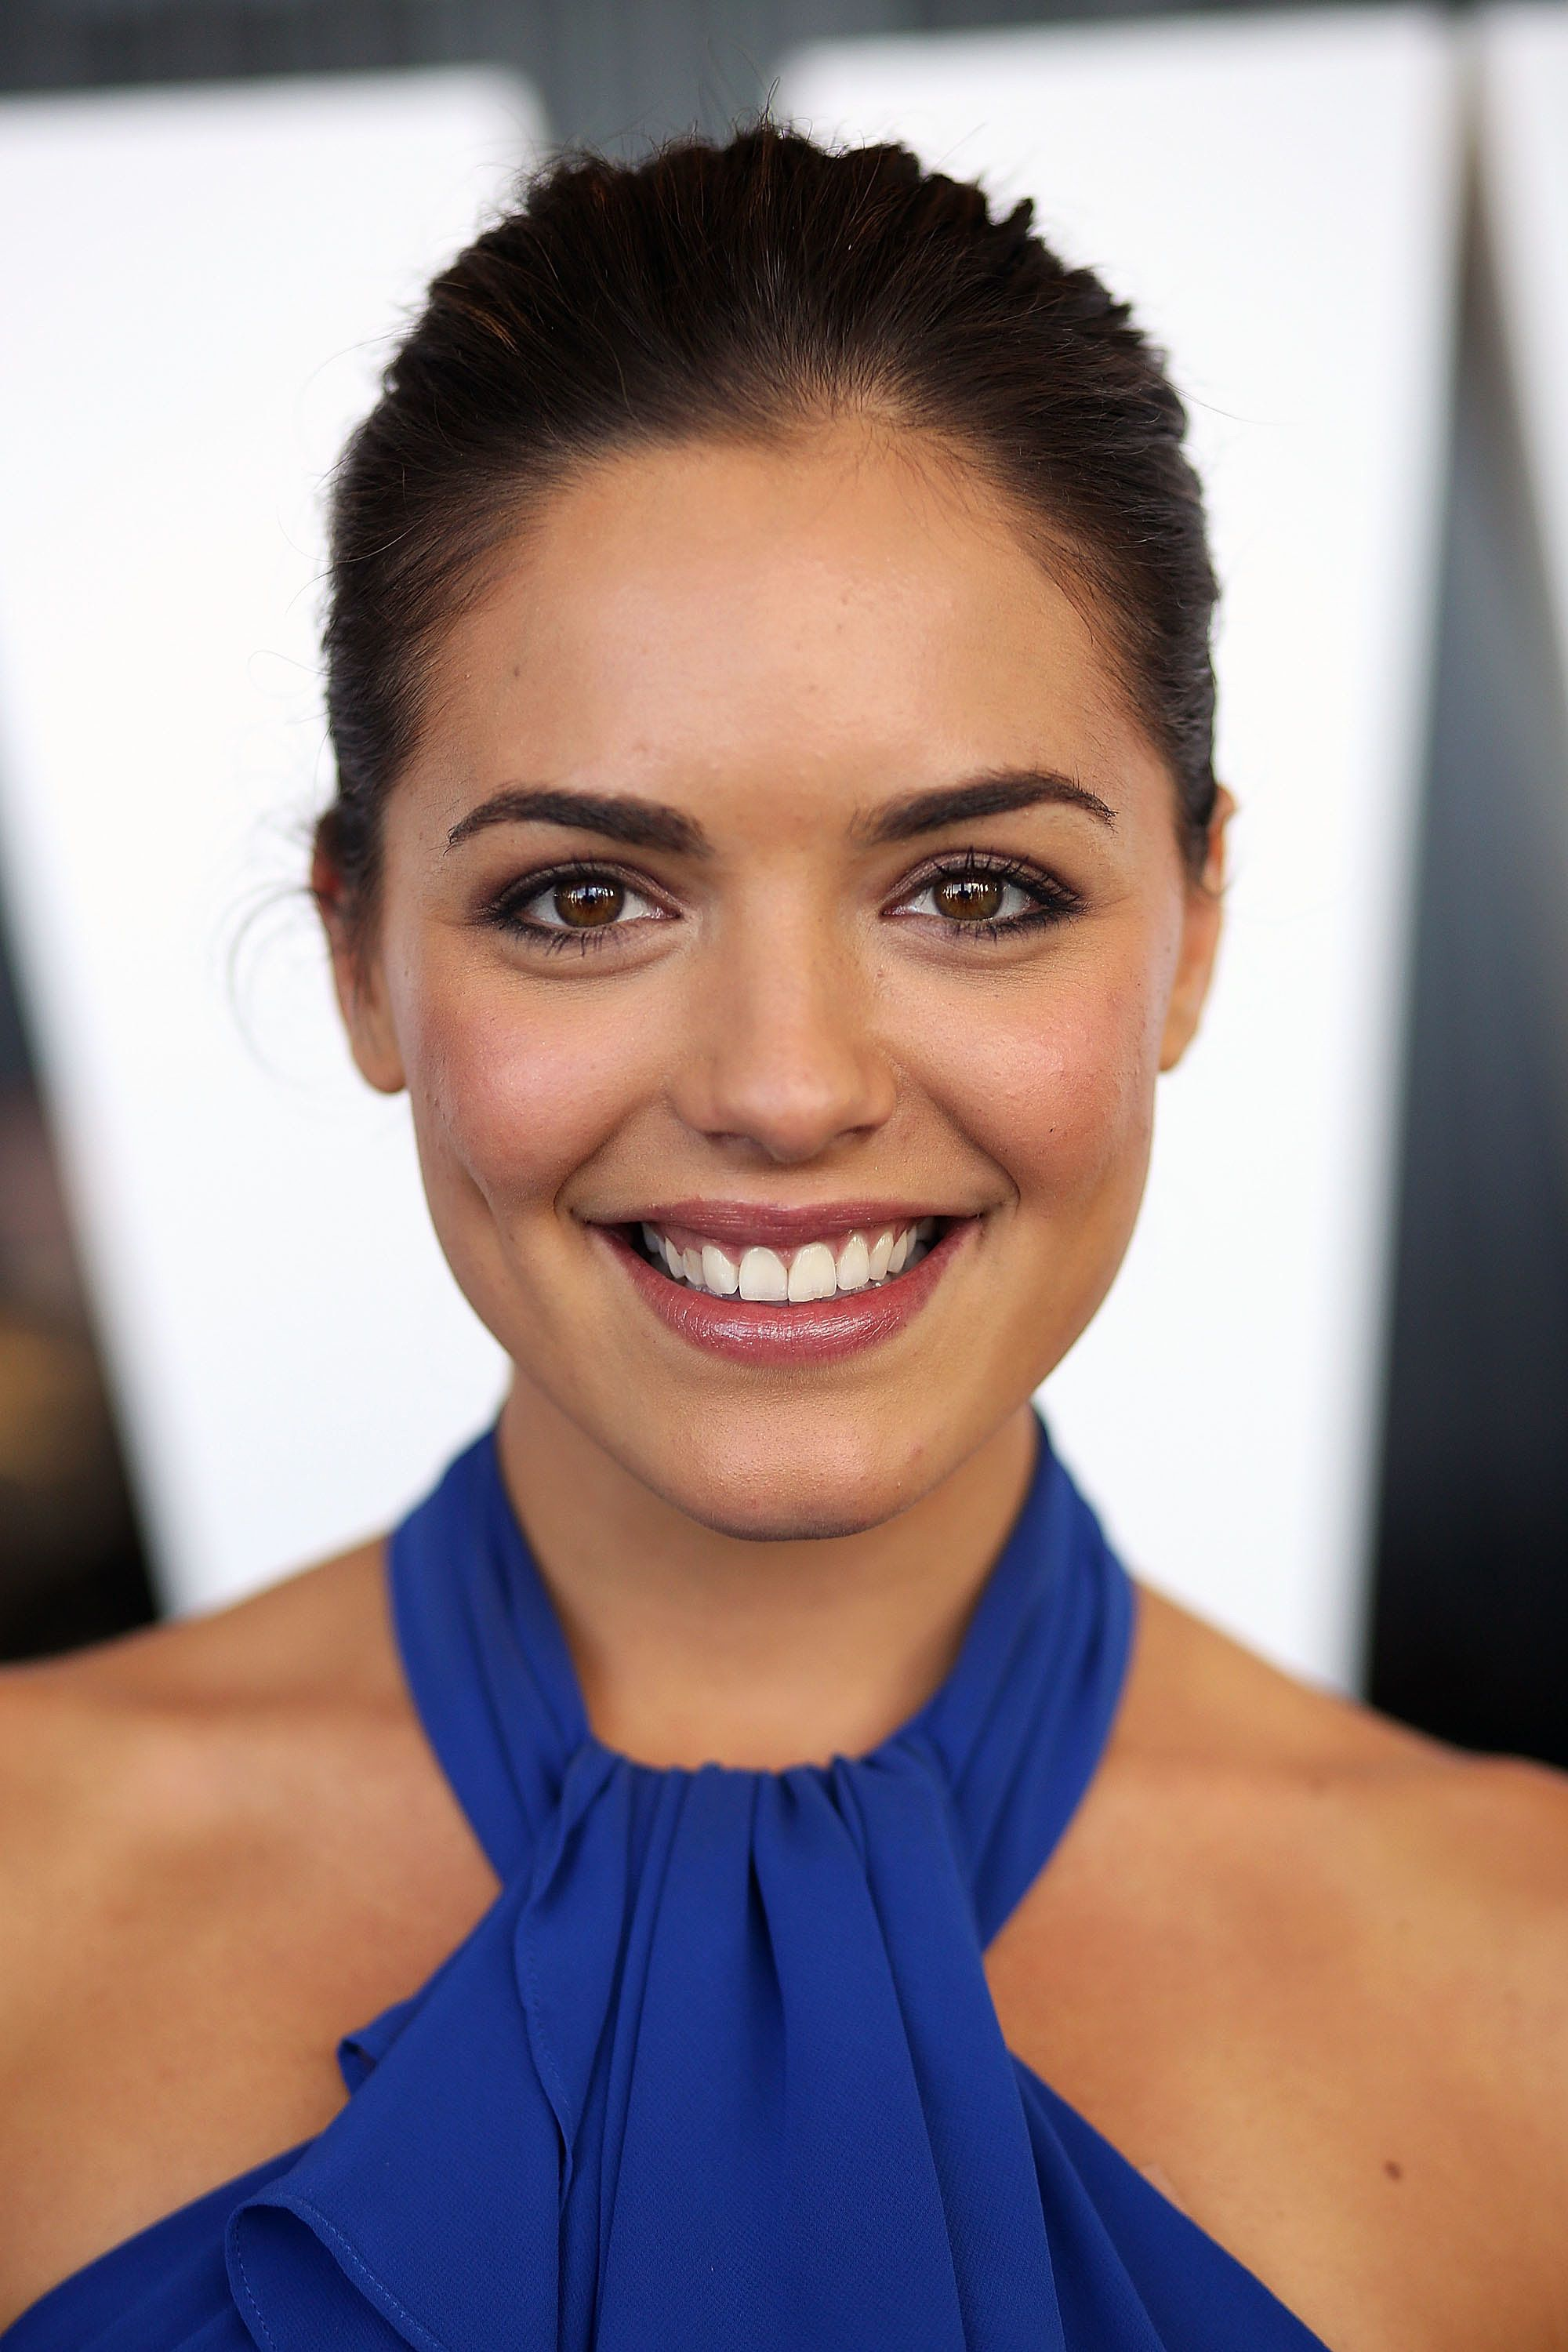 Young Olympia Valance nudes (42 photos), Topless, Is a cute, Selfie, cameltoe 2020